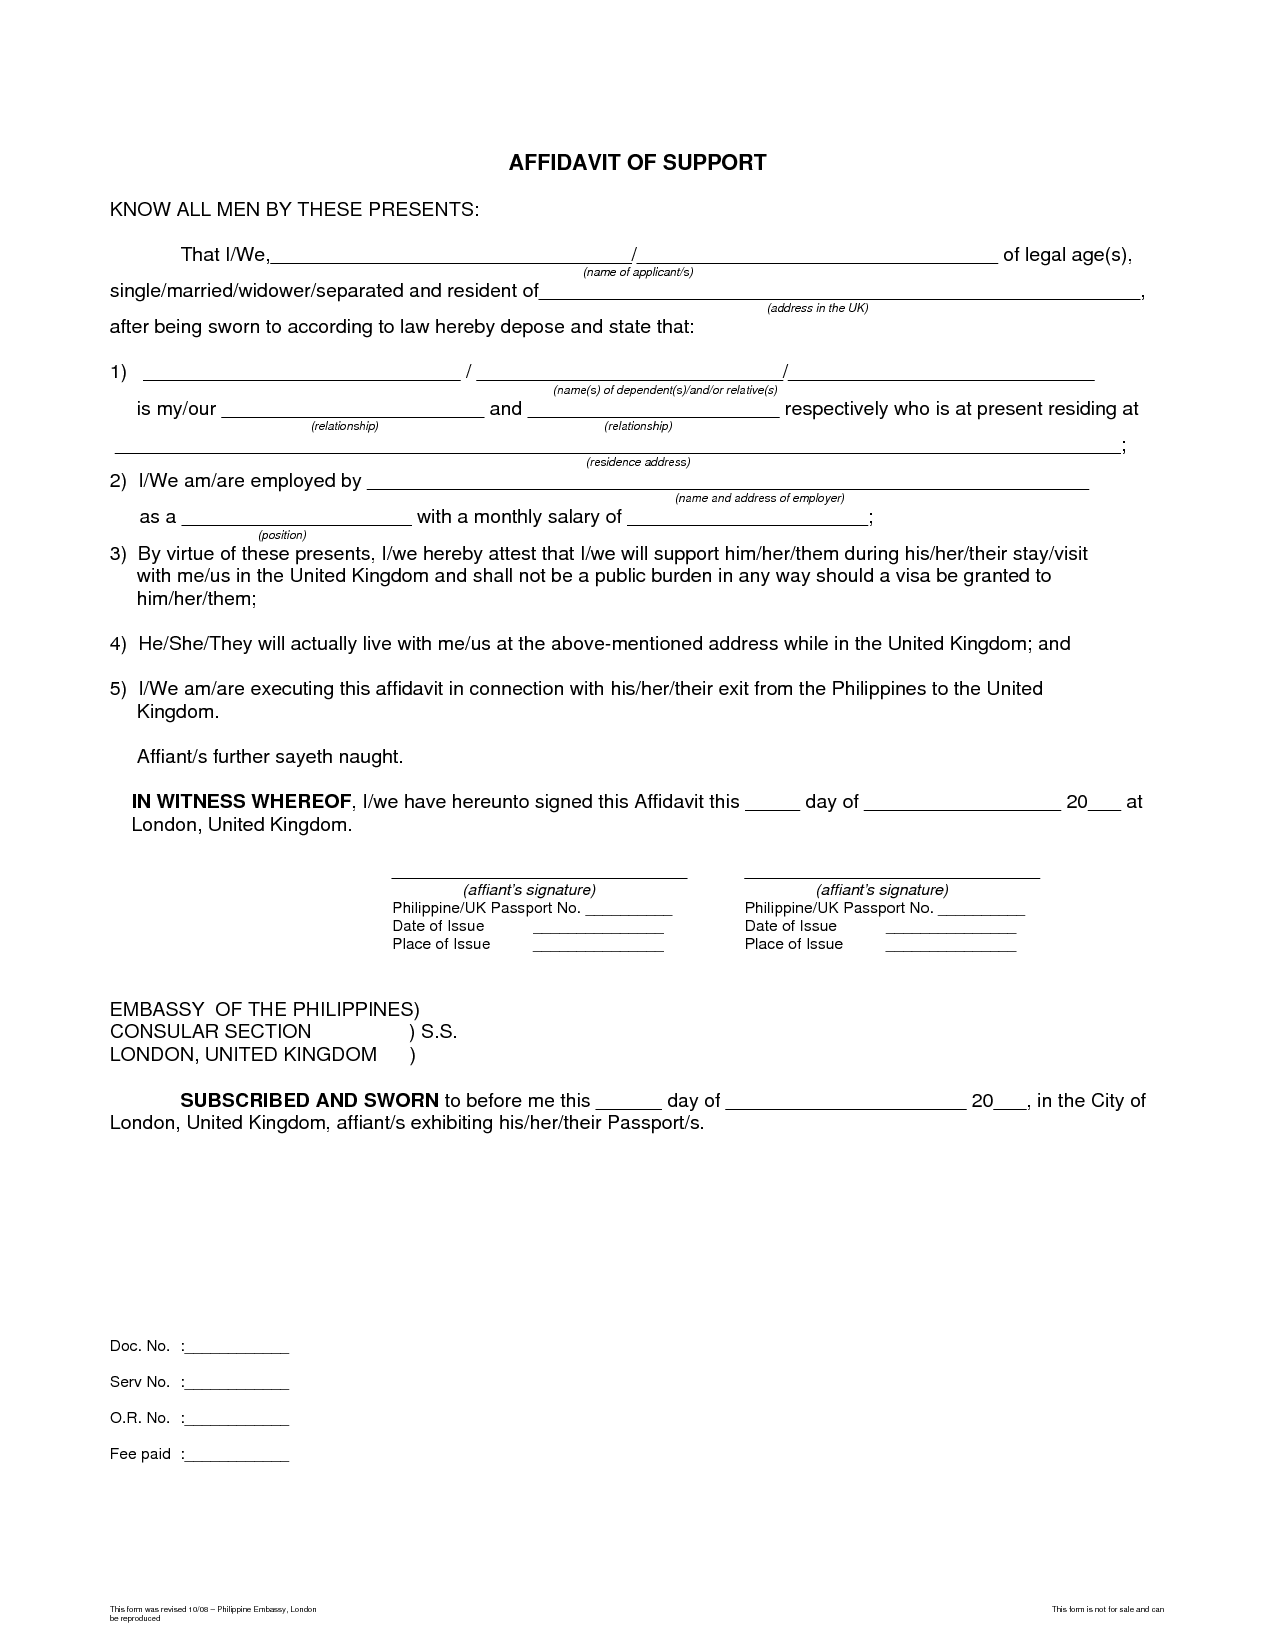 Affidavit Bagnas affidavit of support sample – Affidavit of Support Form